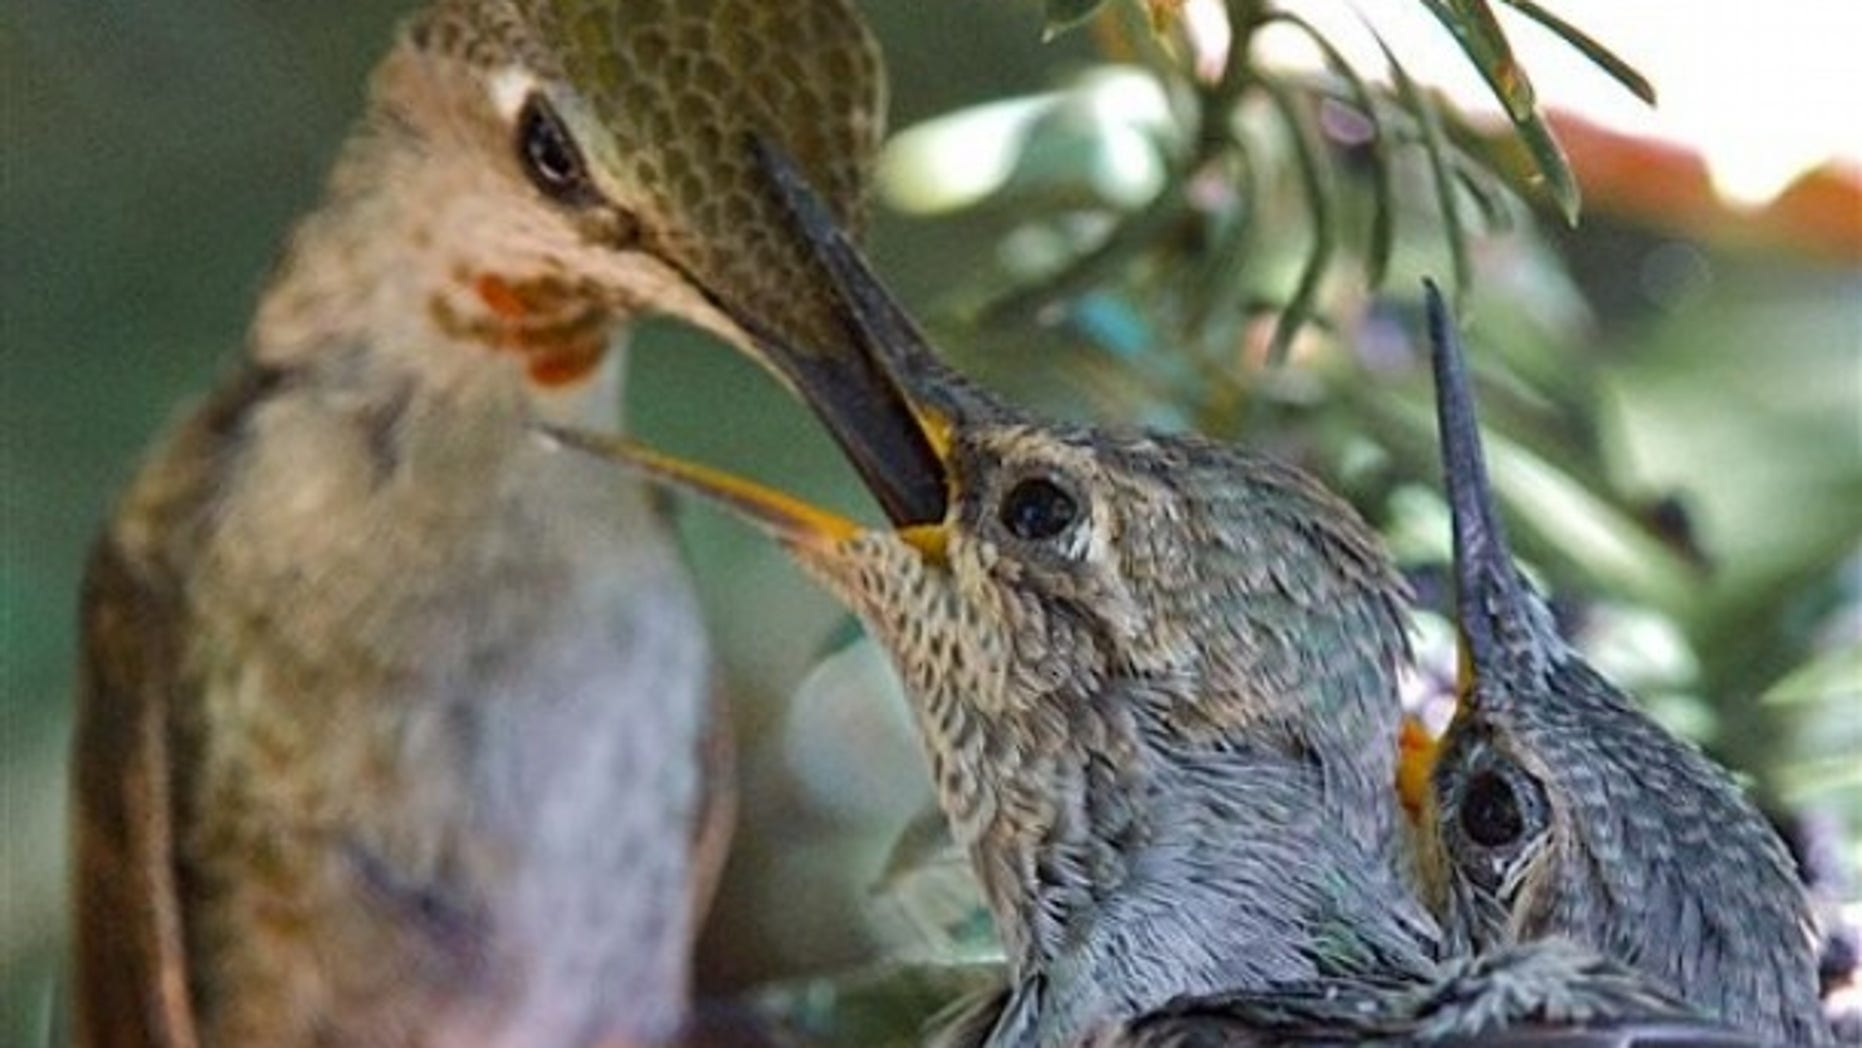 An anna's humming bird feeds her chicks in their nest in Benicia, Calif. (AP).